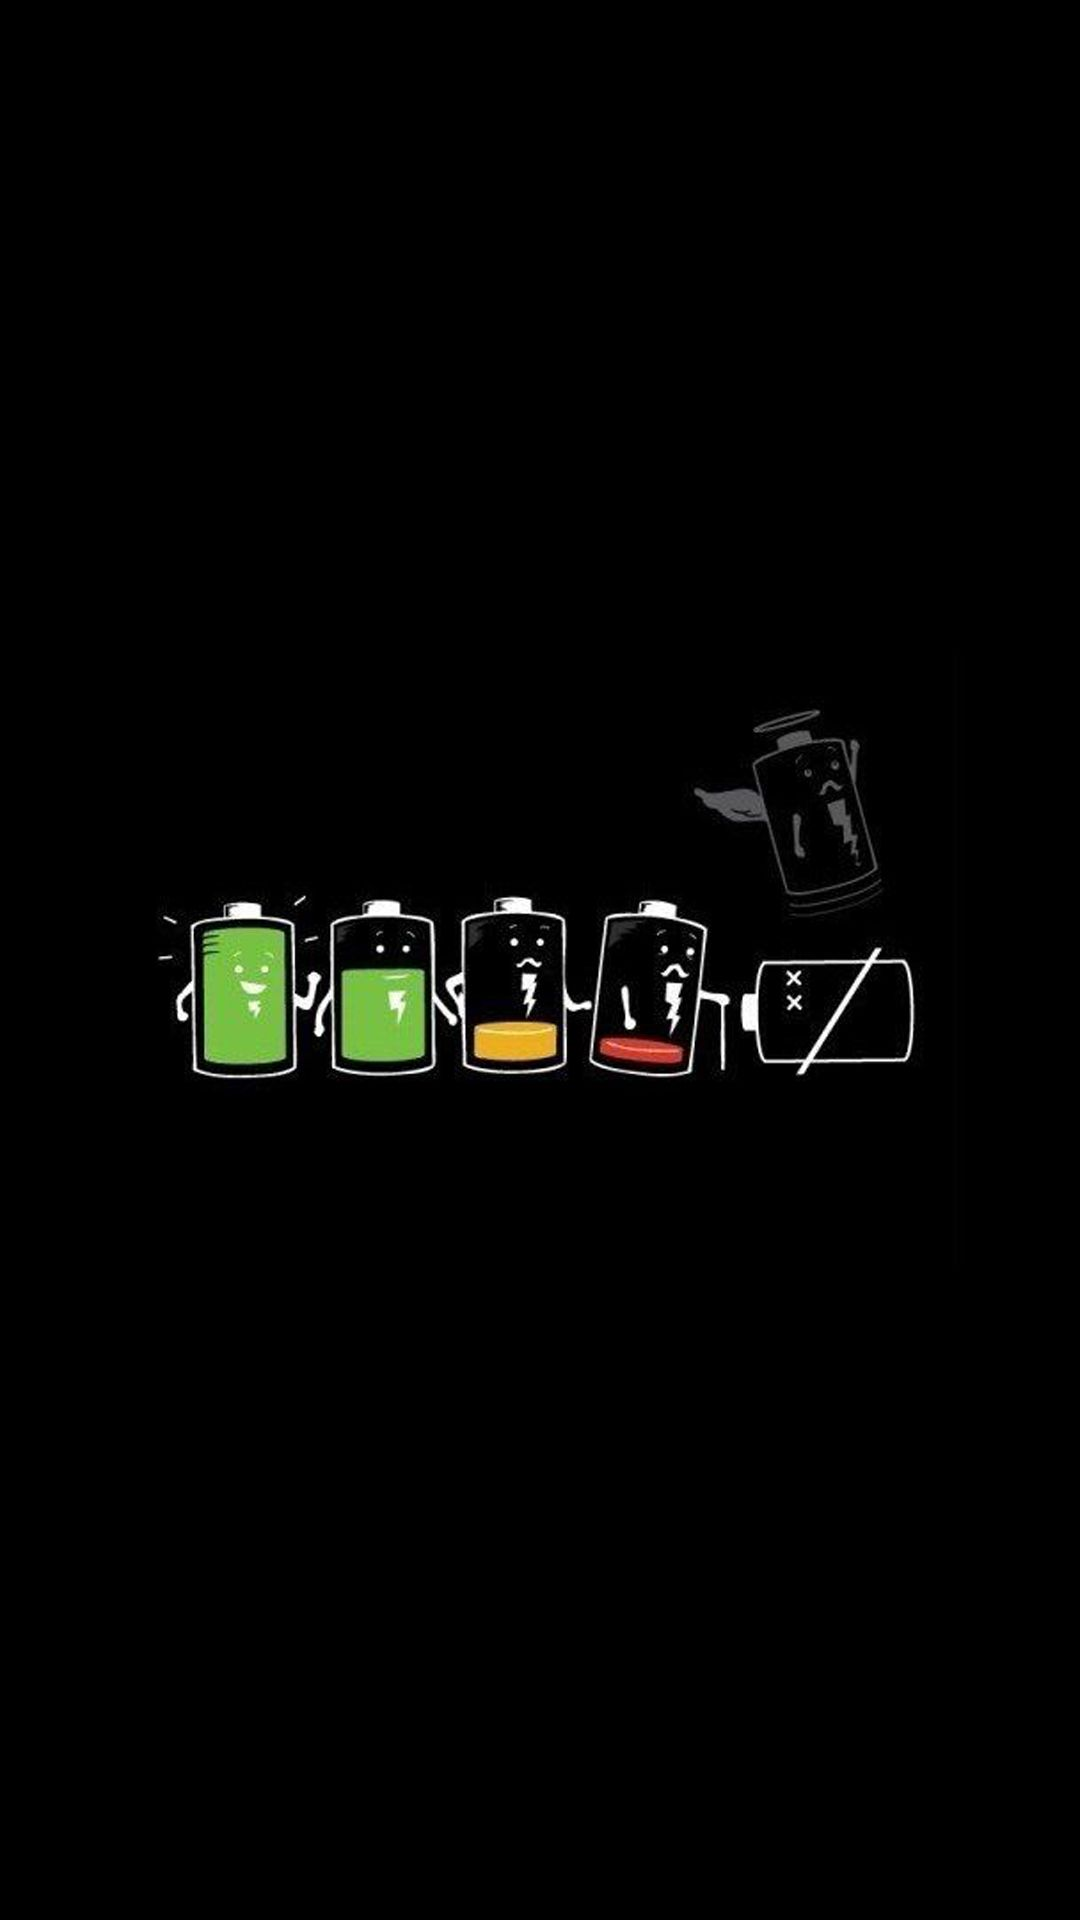 1080x1920 The Battery Life. Funny cartoon art iPhone wallpapers. Tap to see ...